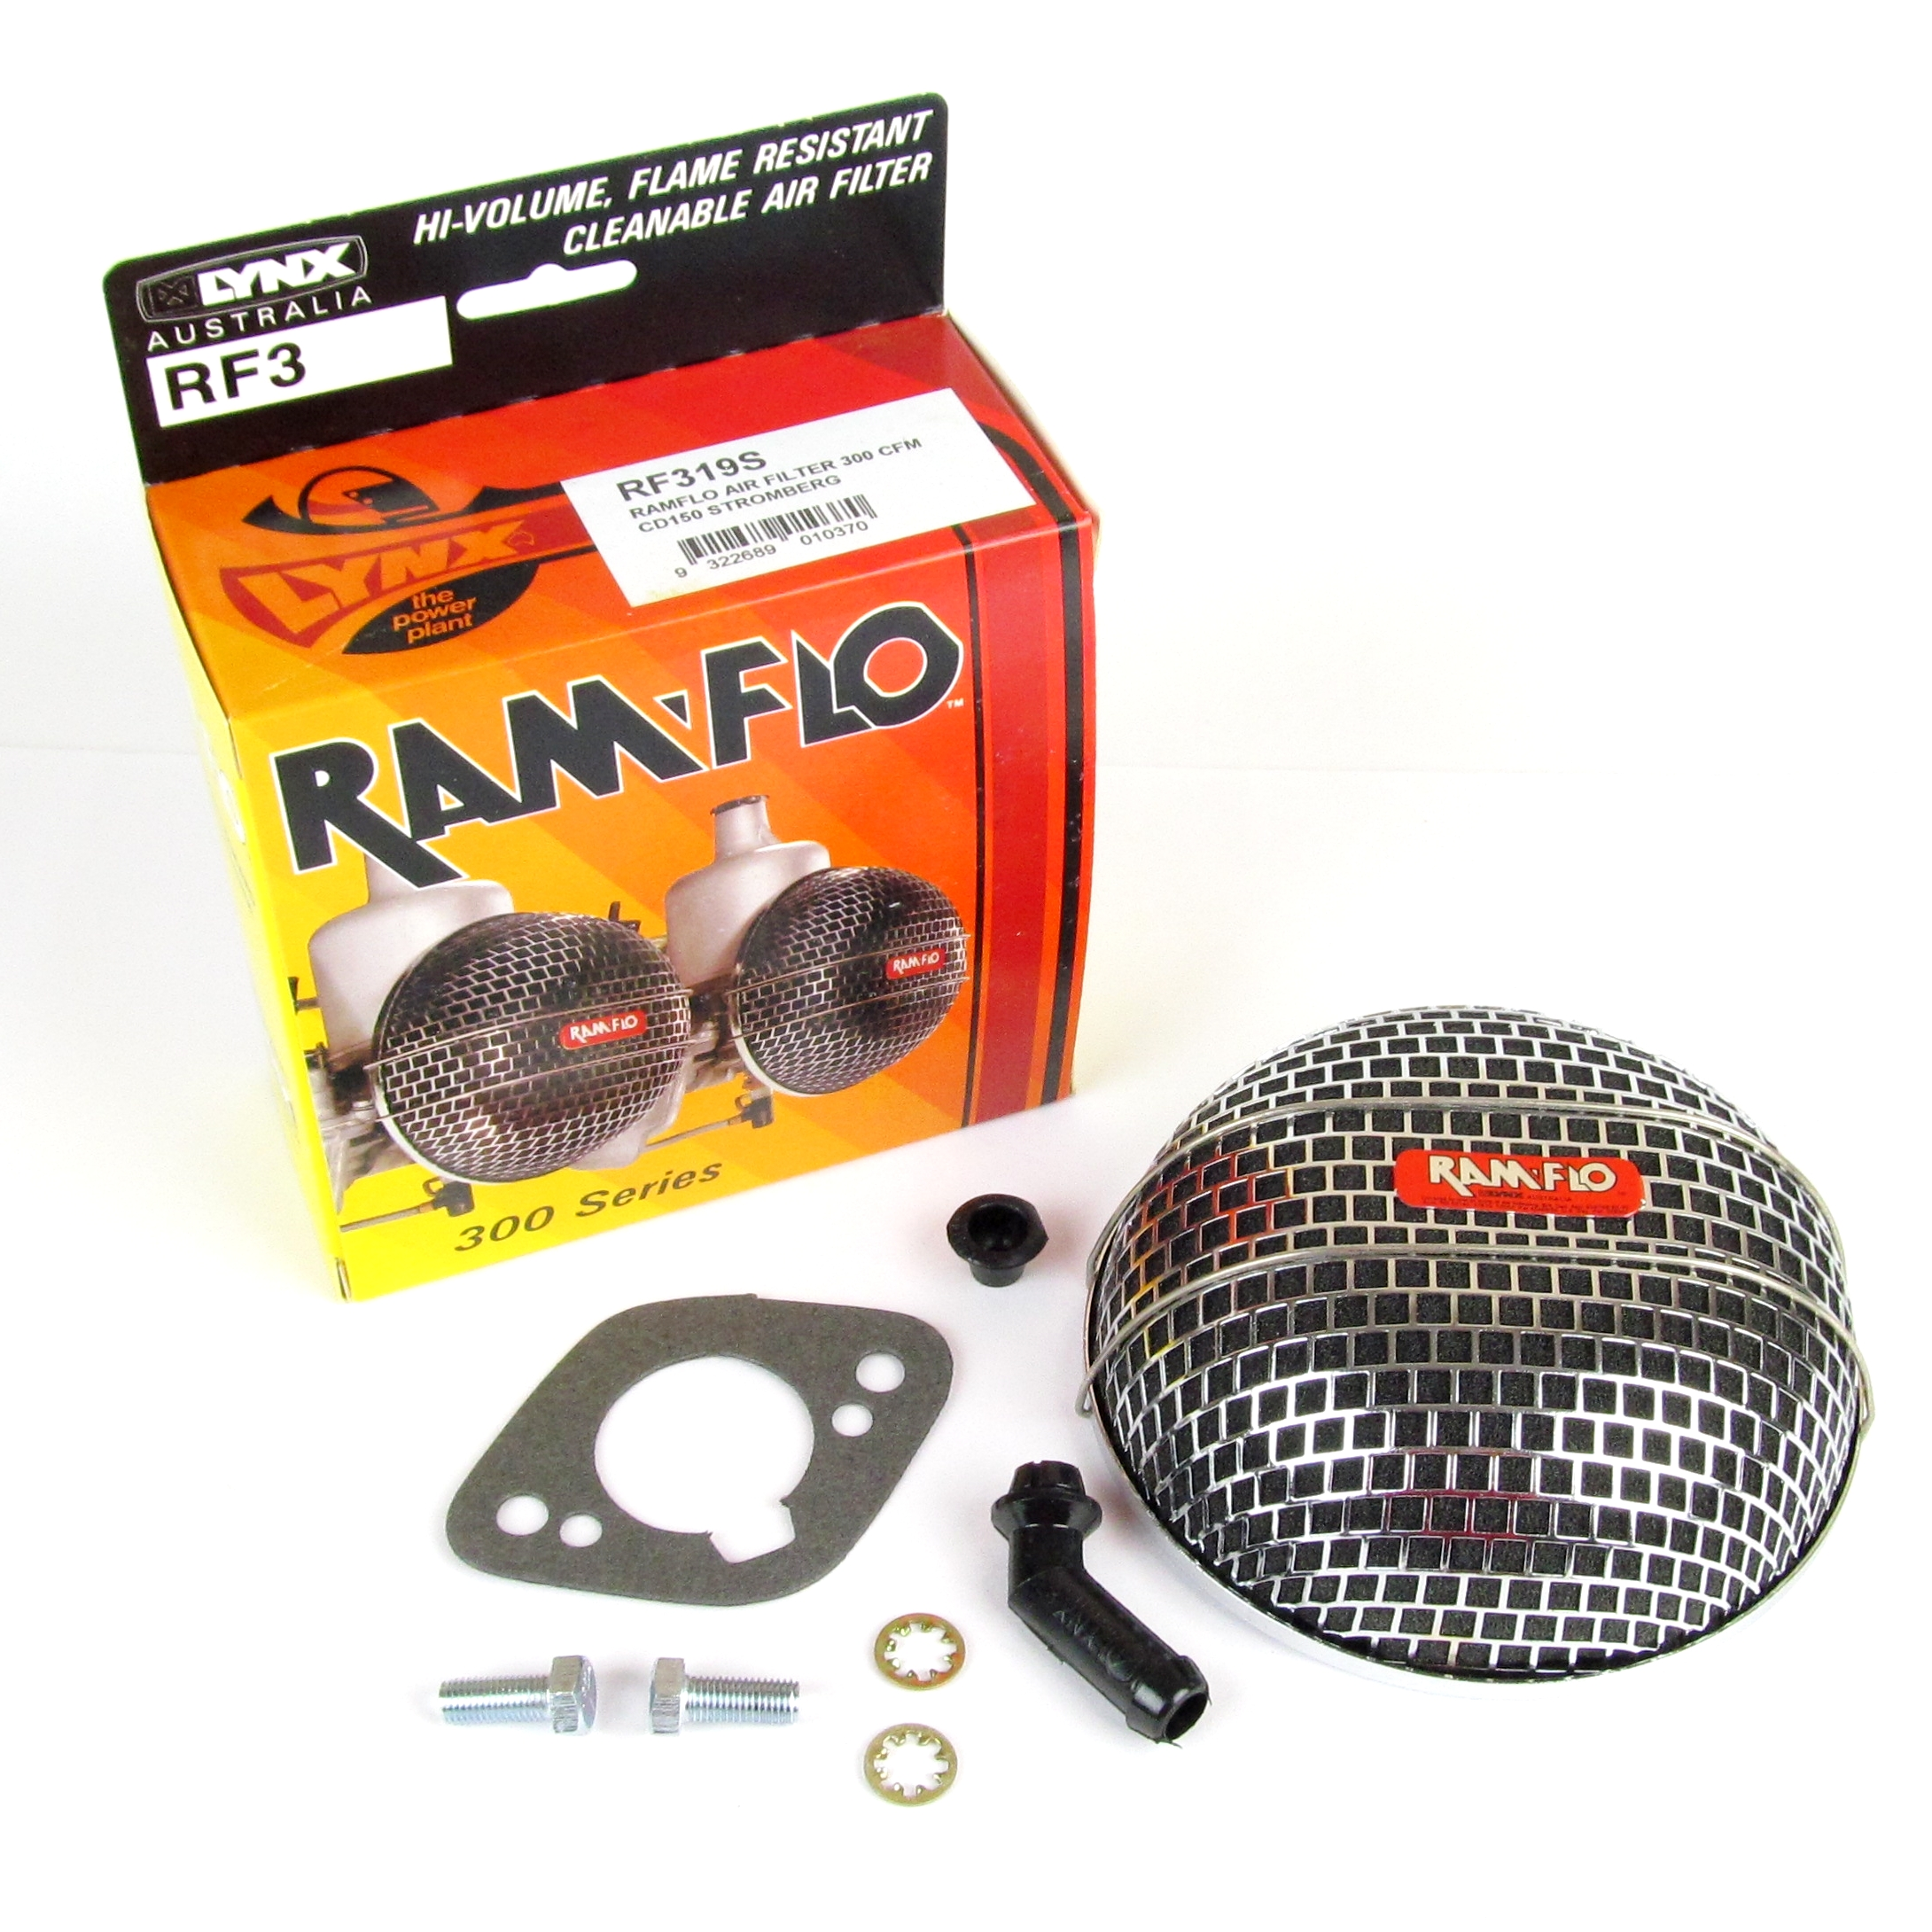 LYNX RAMFLO AIR FILTER FOR CLASSIC STROMBERG-ZENITH CD150 CARBS